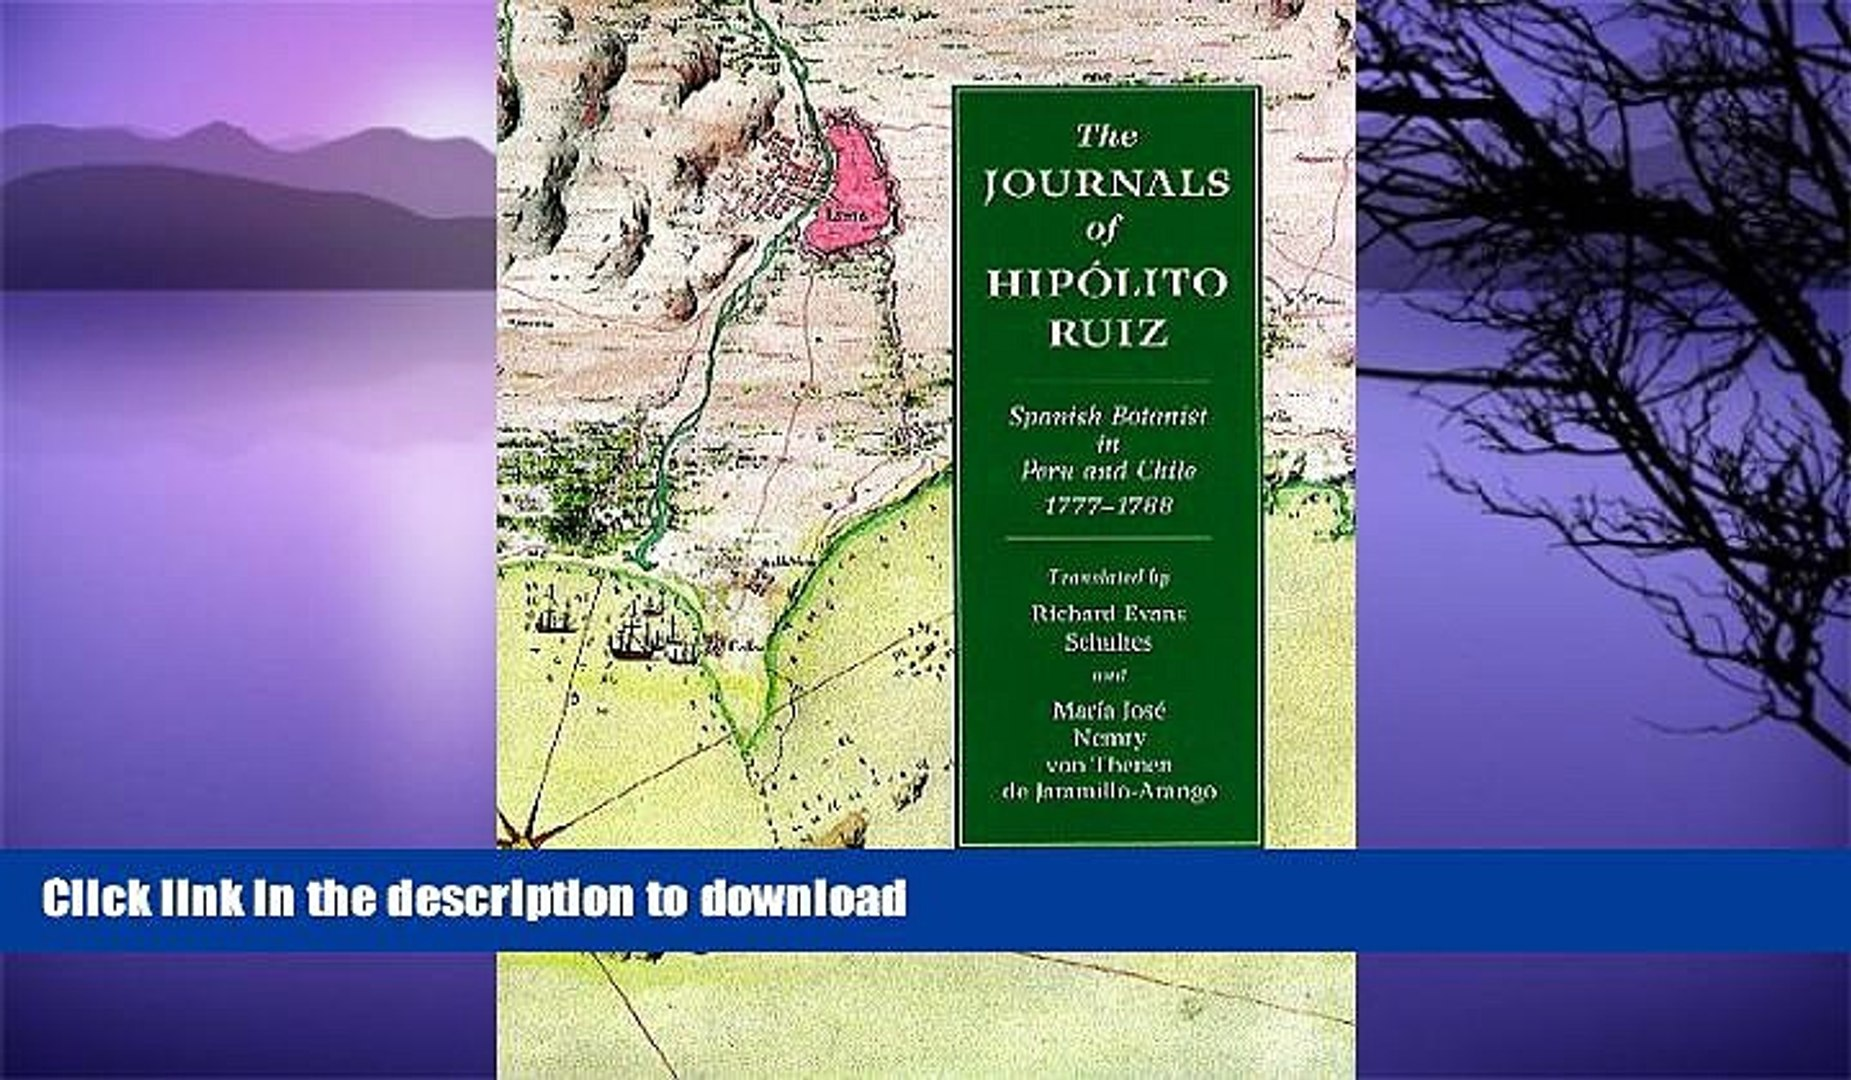 FAVORITE BOOK  The Journals of Hippolito Ruiz: Spanish Botanist in Peru and Chile, 1777-1788